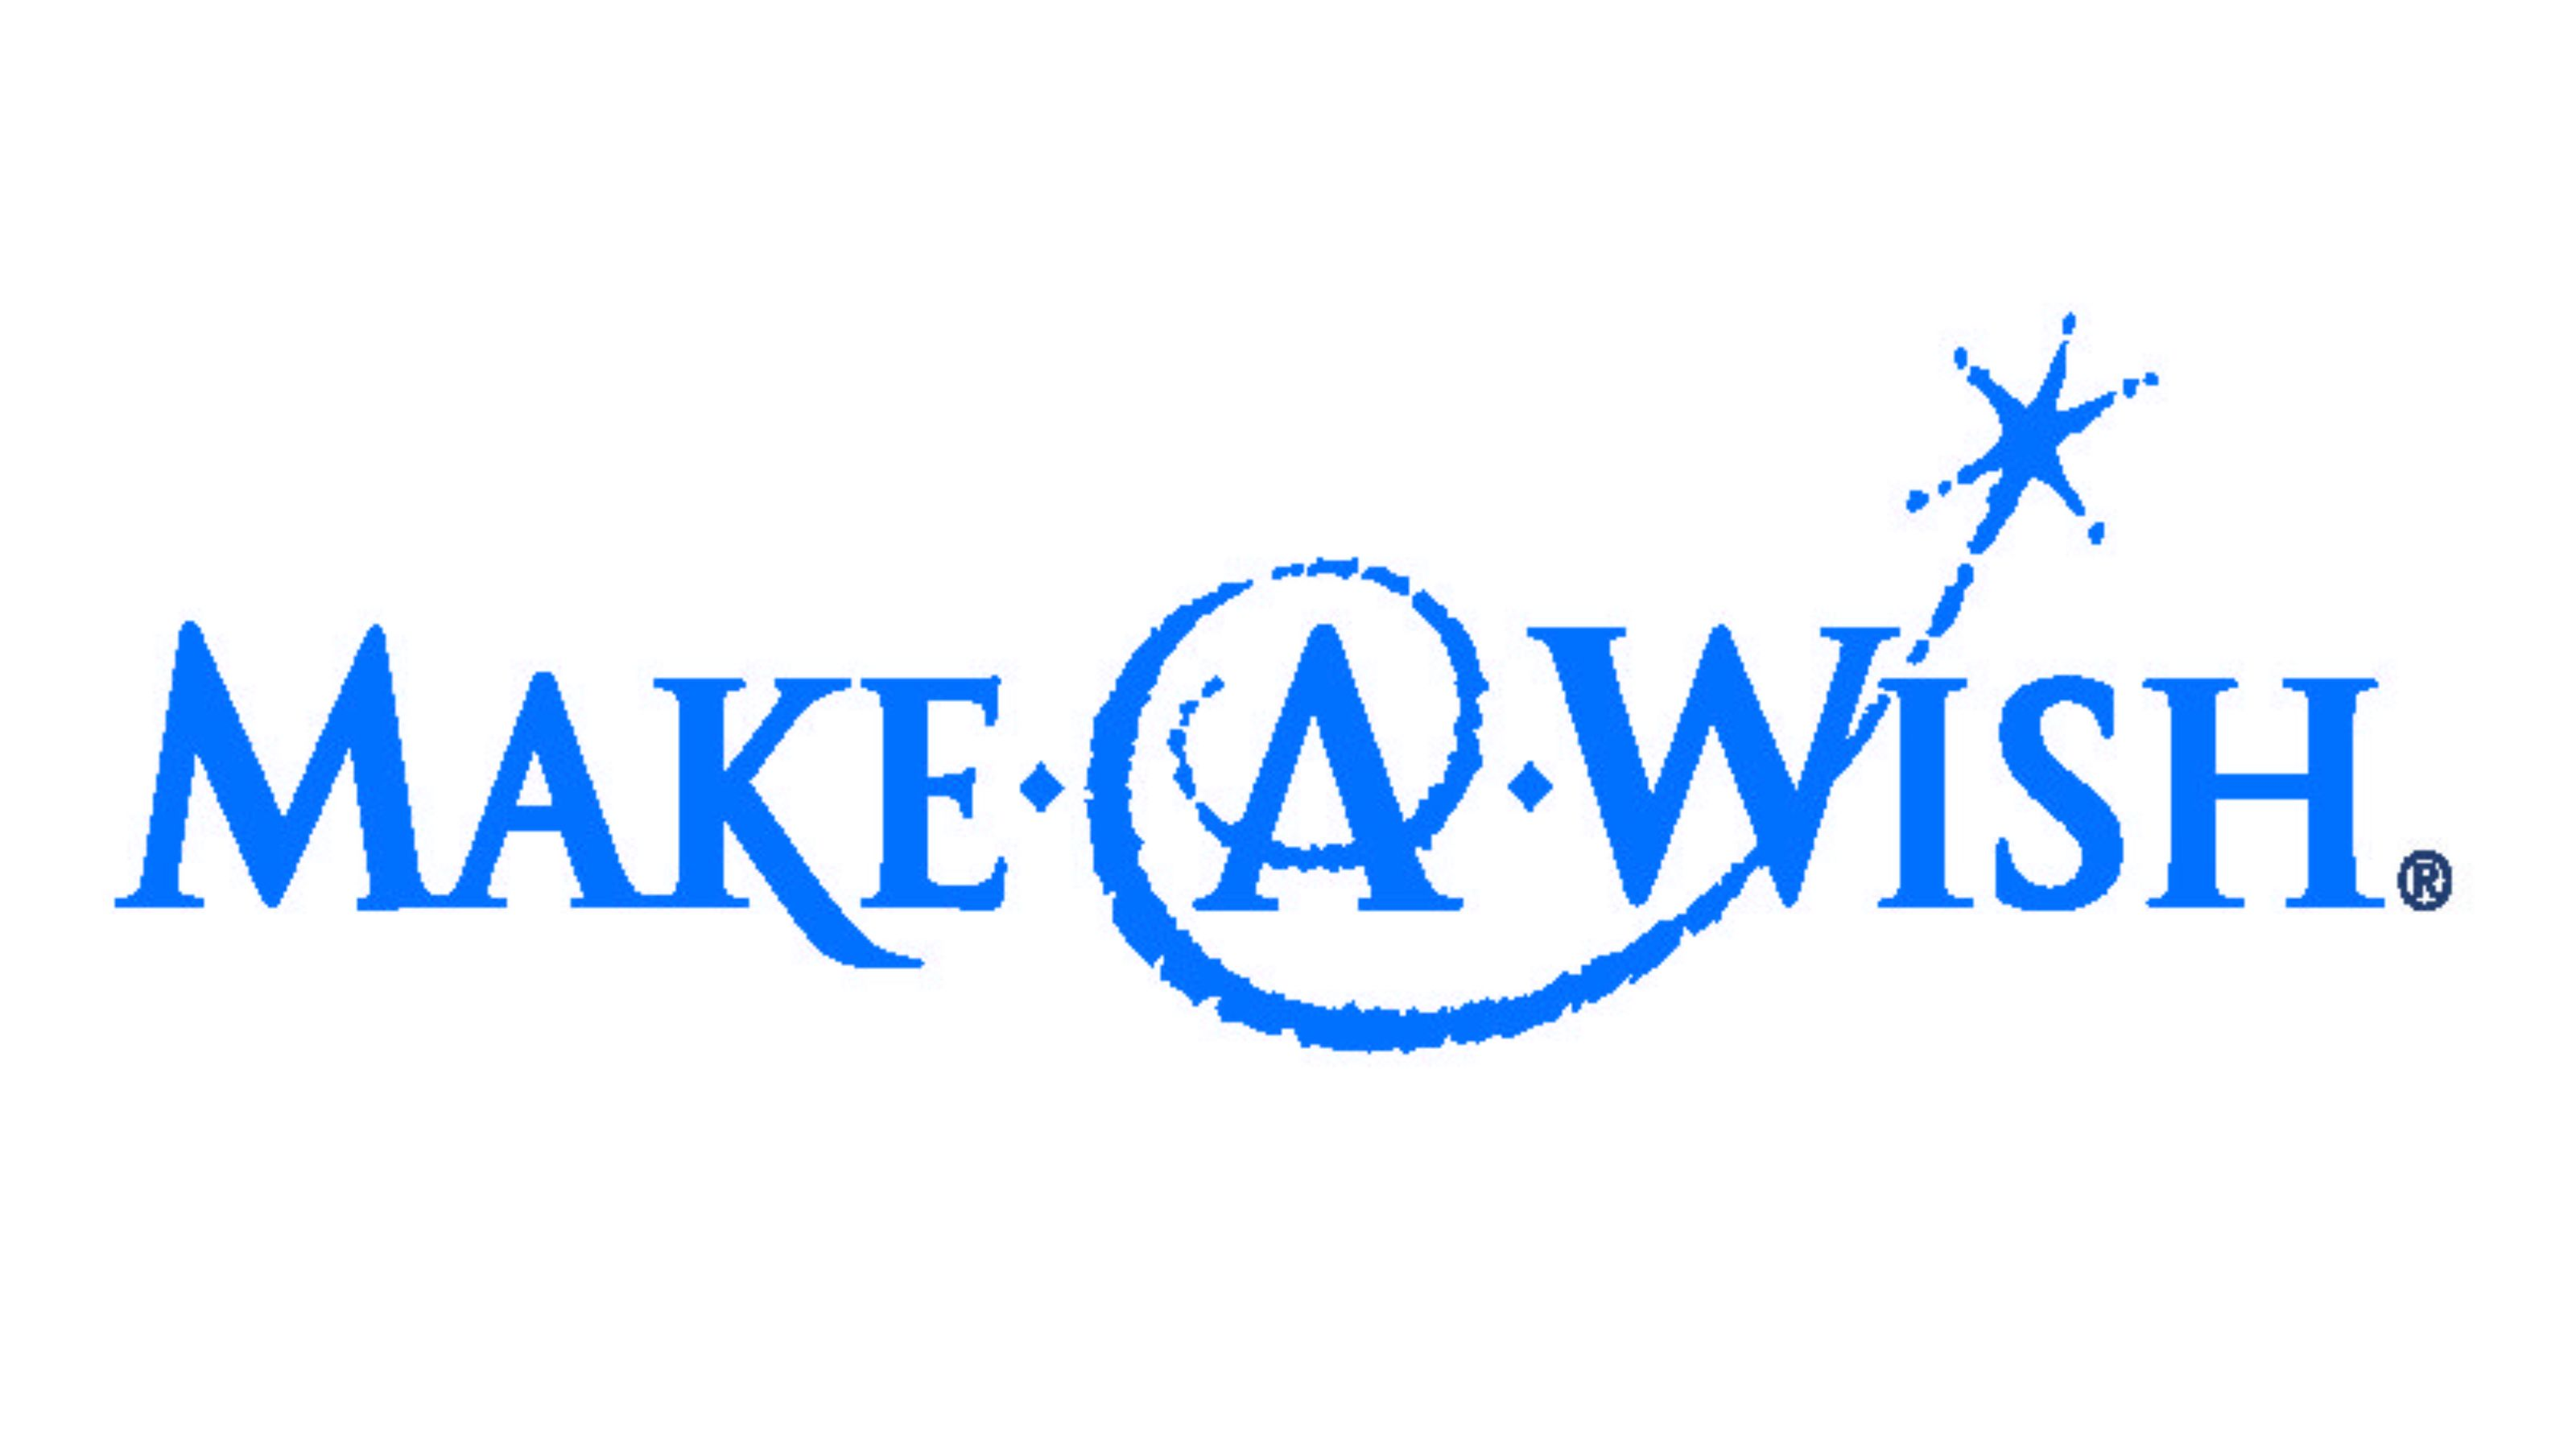 Make A Wish Logo Png (95+ images in Collection) Page 3.